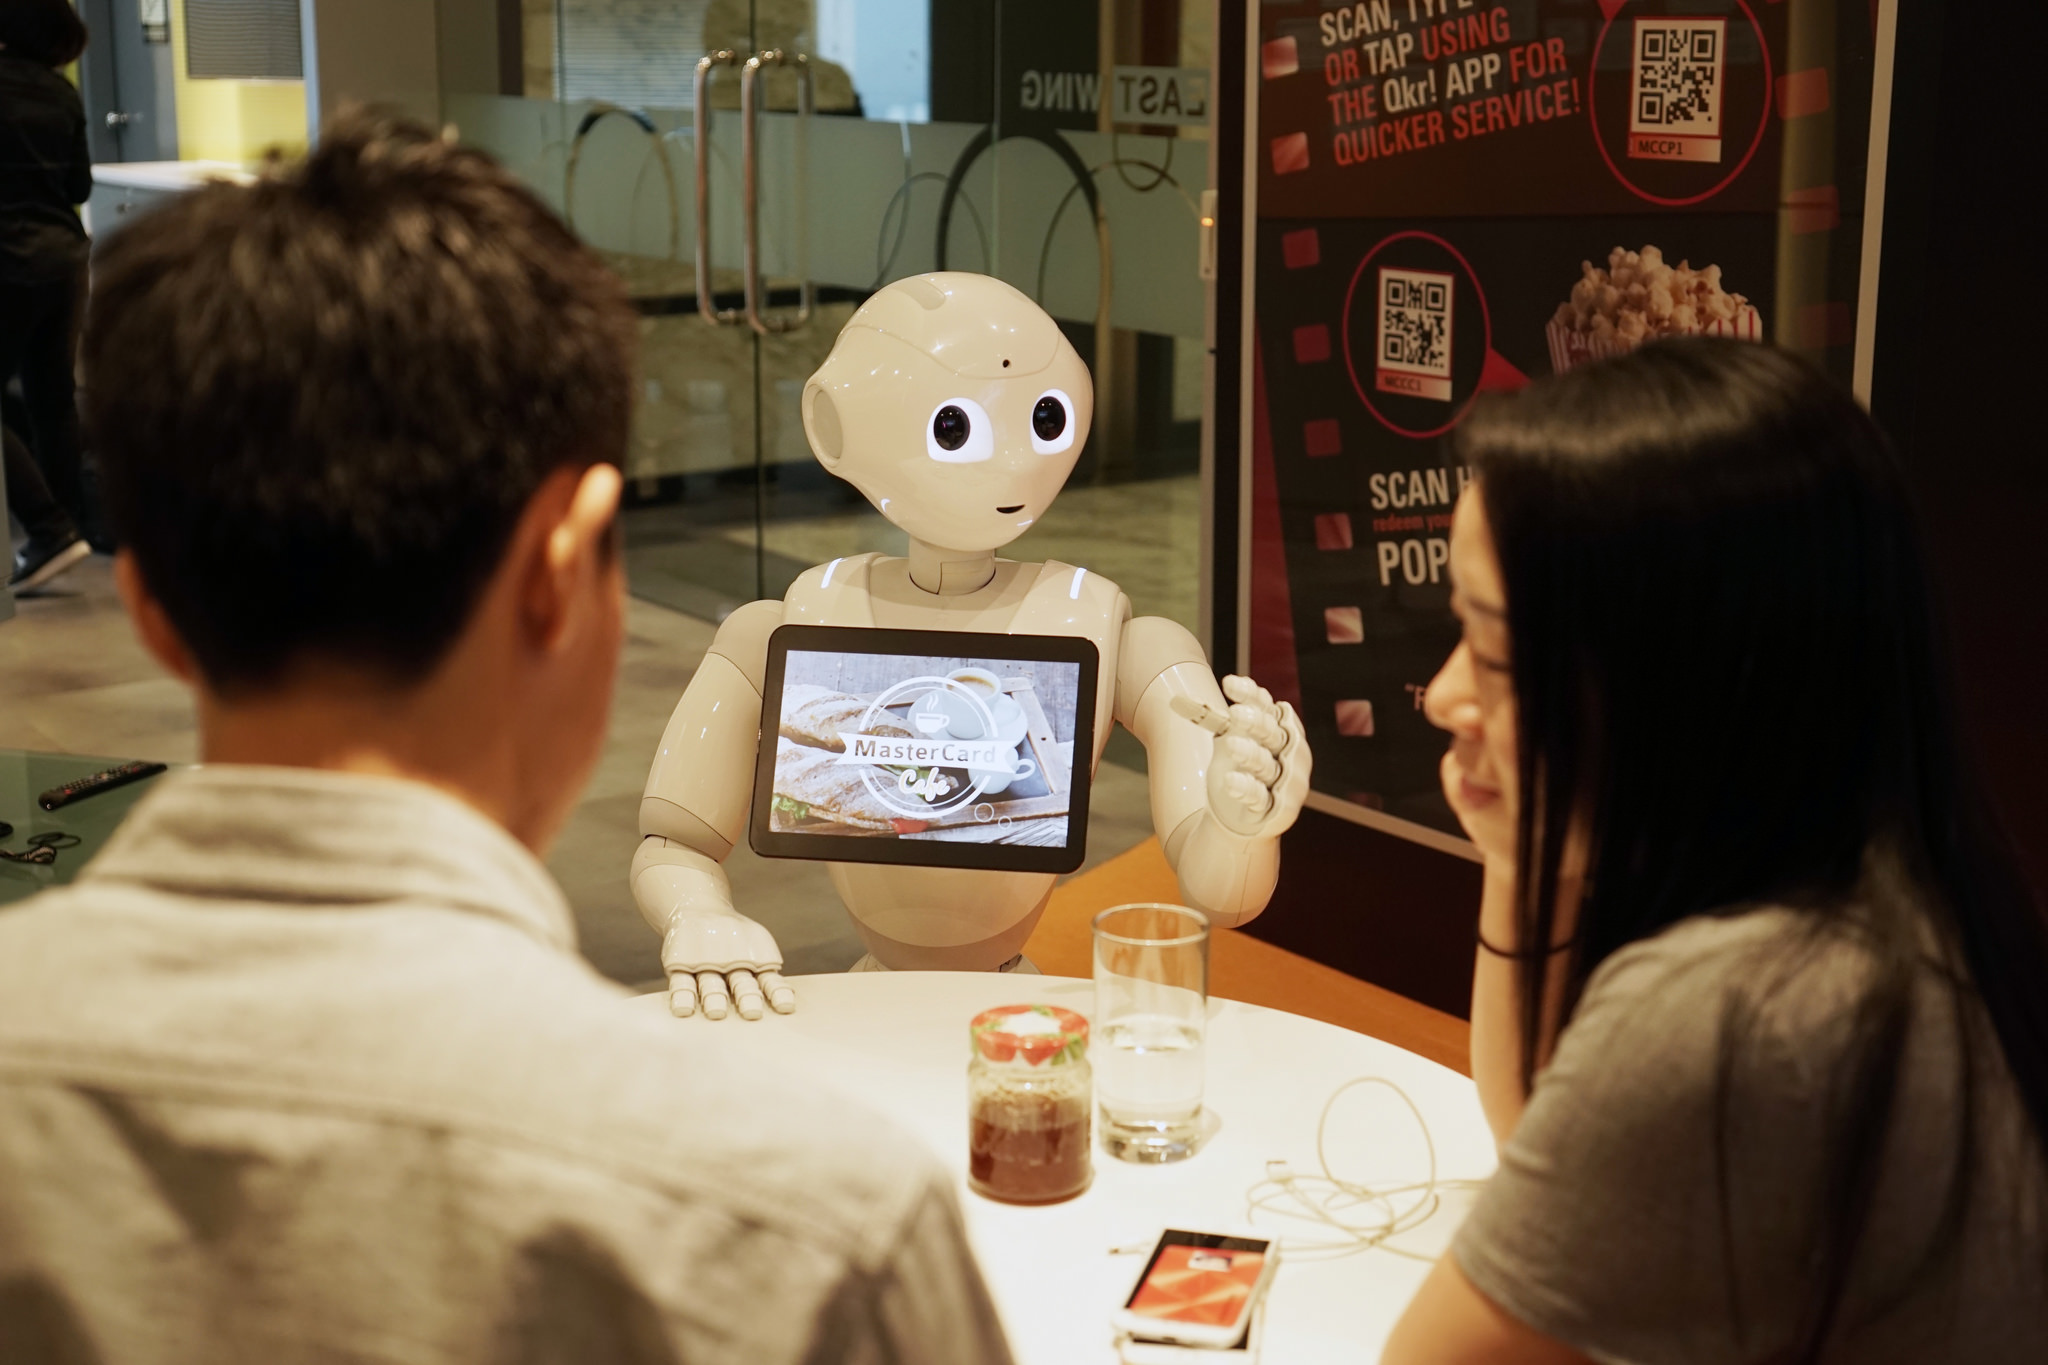 MasterCard Labs Pizza Hut Pepper Robot